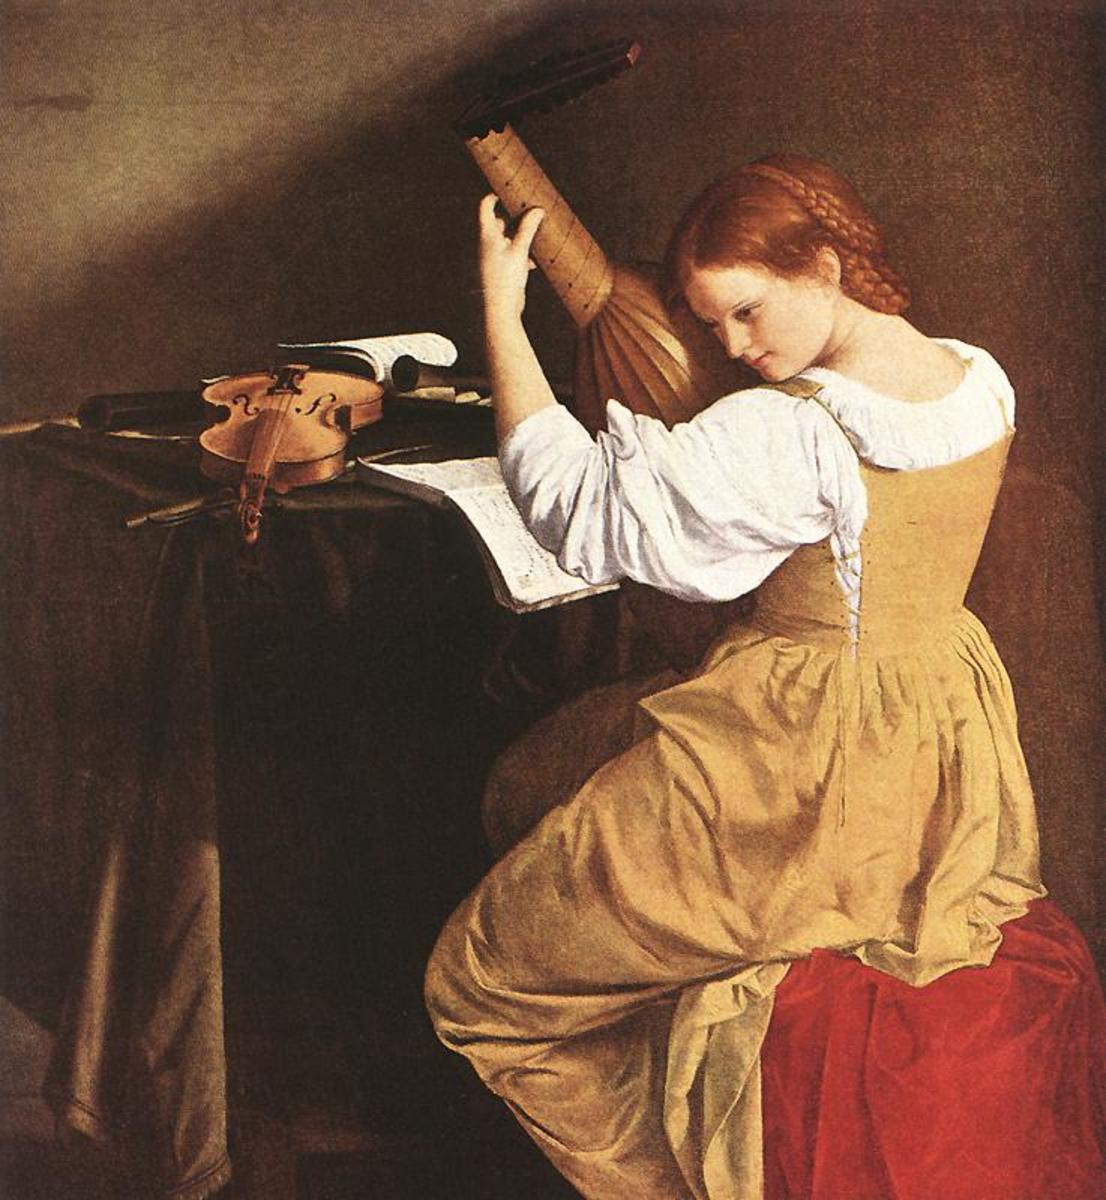 Painting of Francesca Caccini